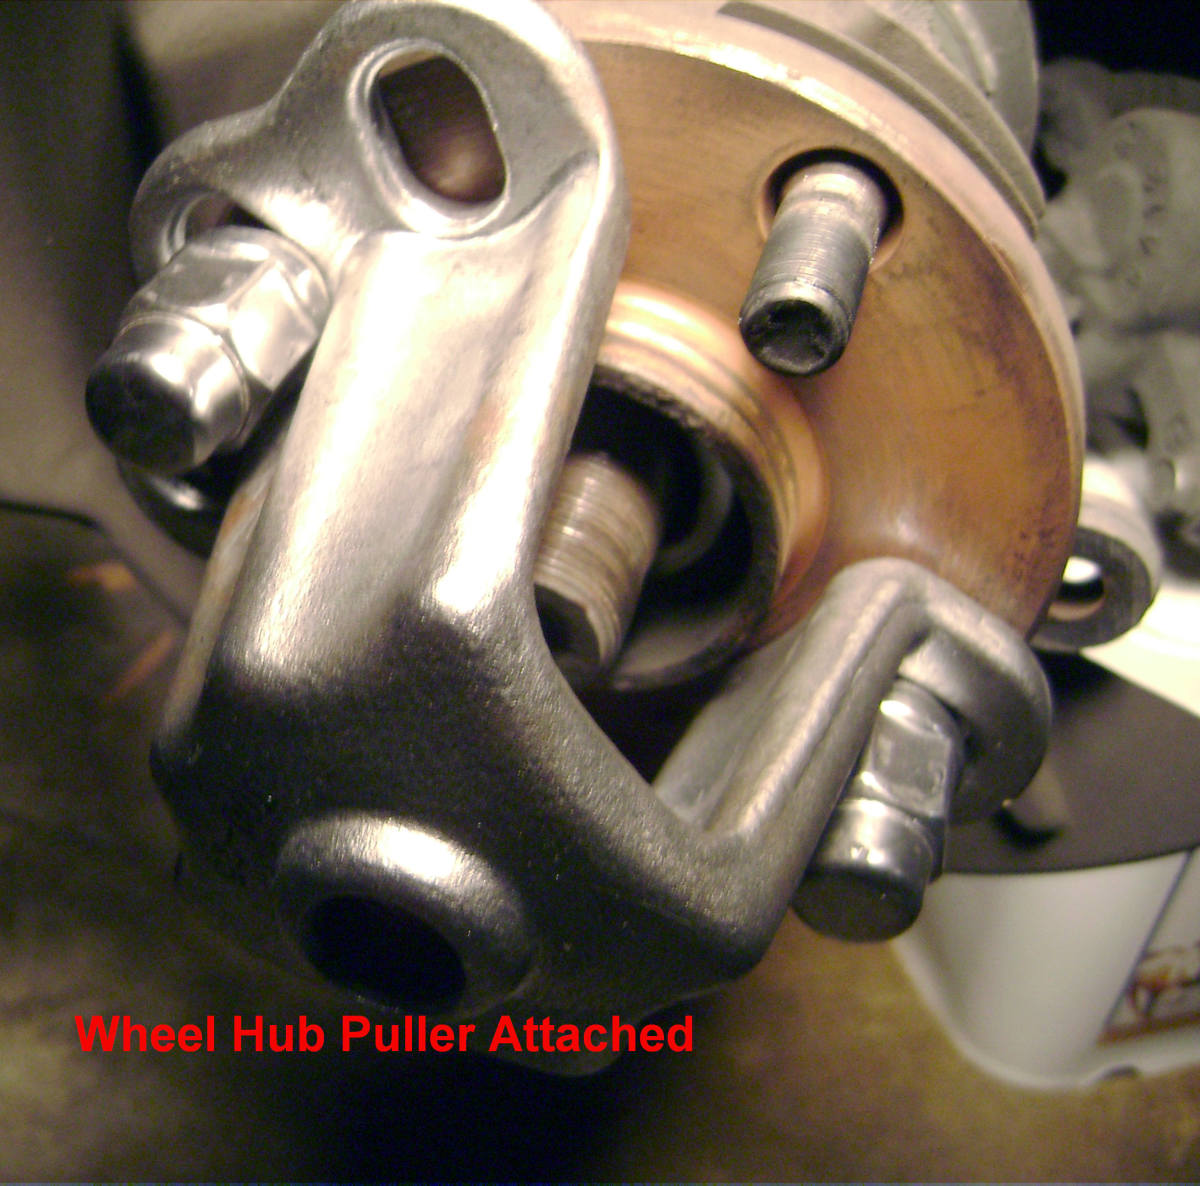 J.  Hub puller attached to hub